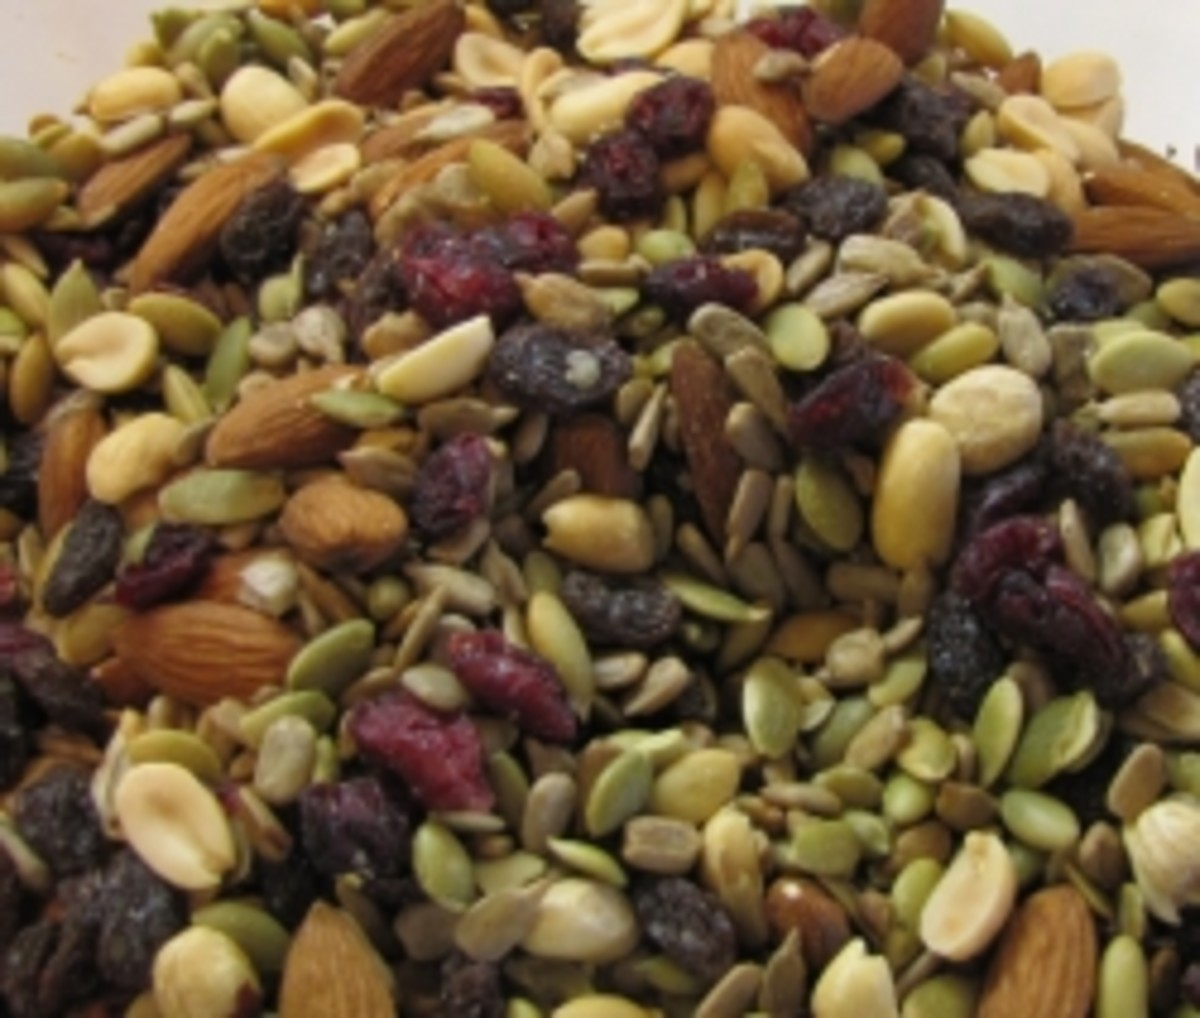 Make a Healthy Trail Mix of Seeds, Dried Fruits and Nuts